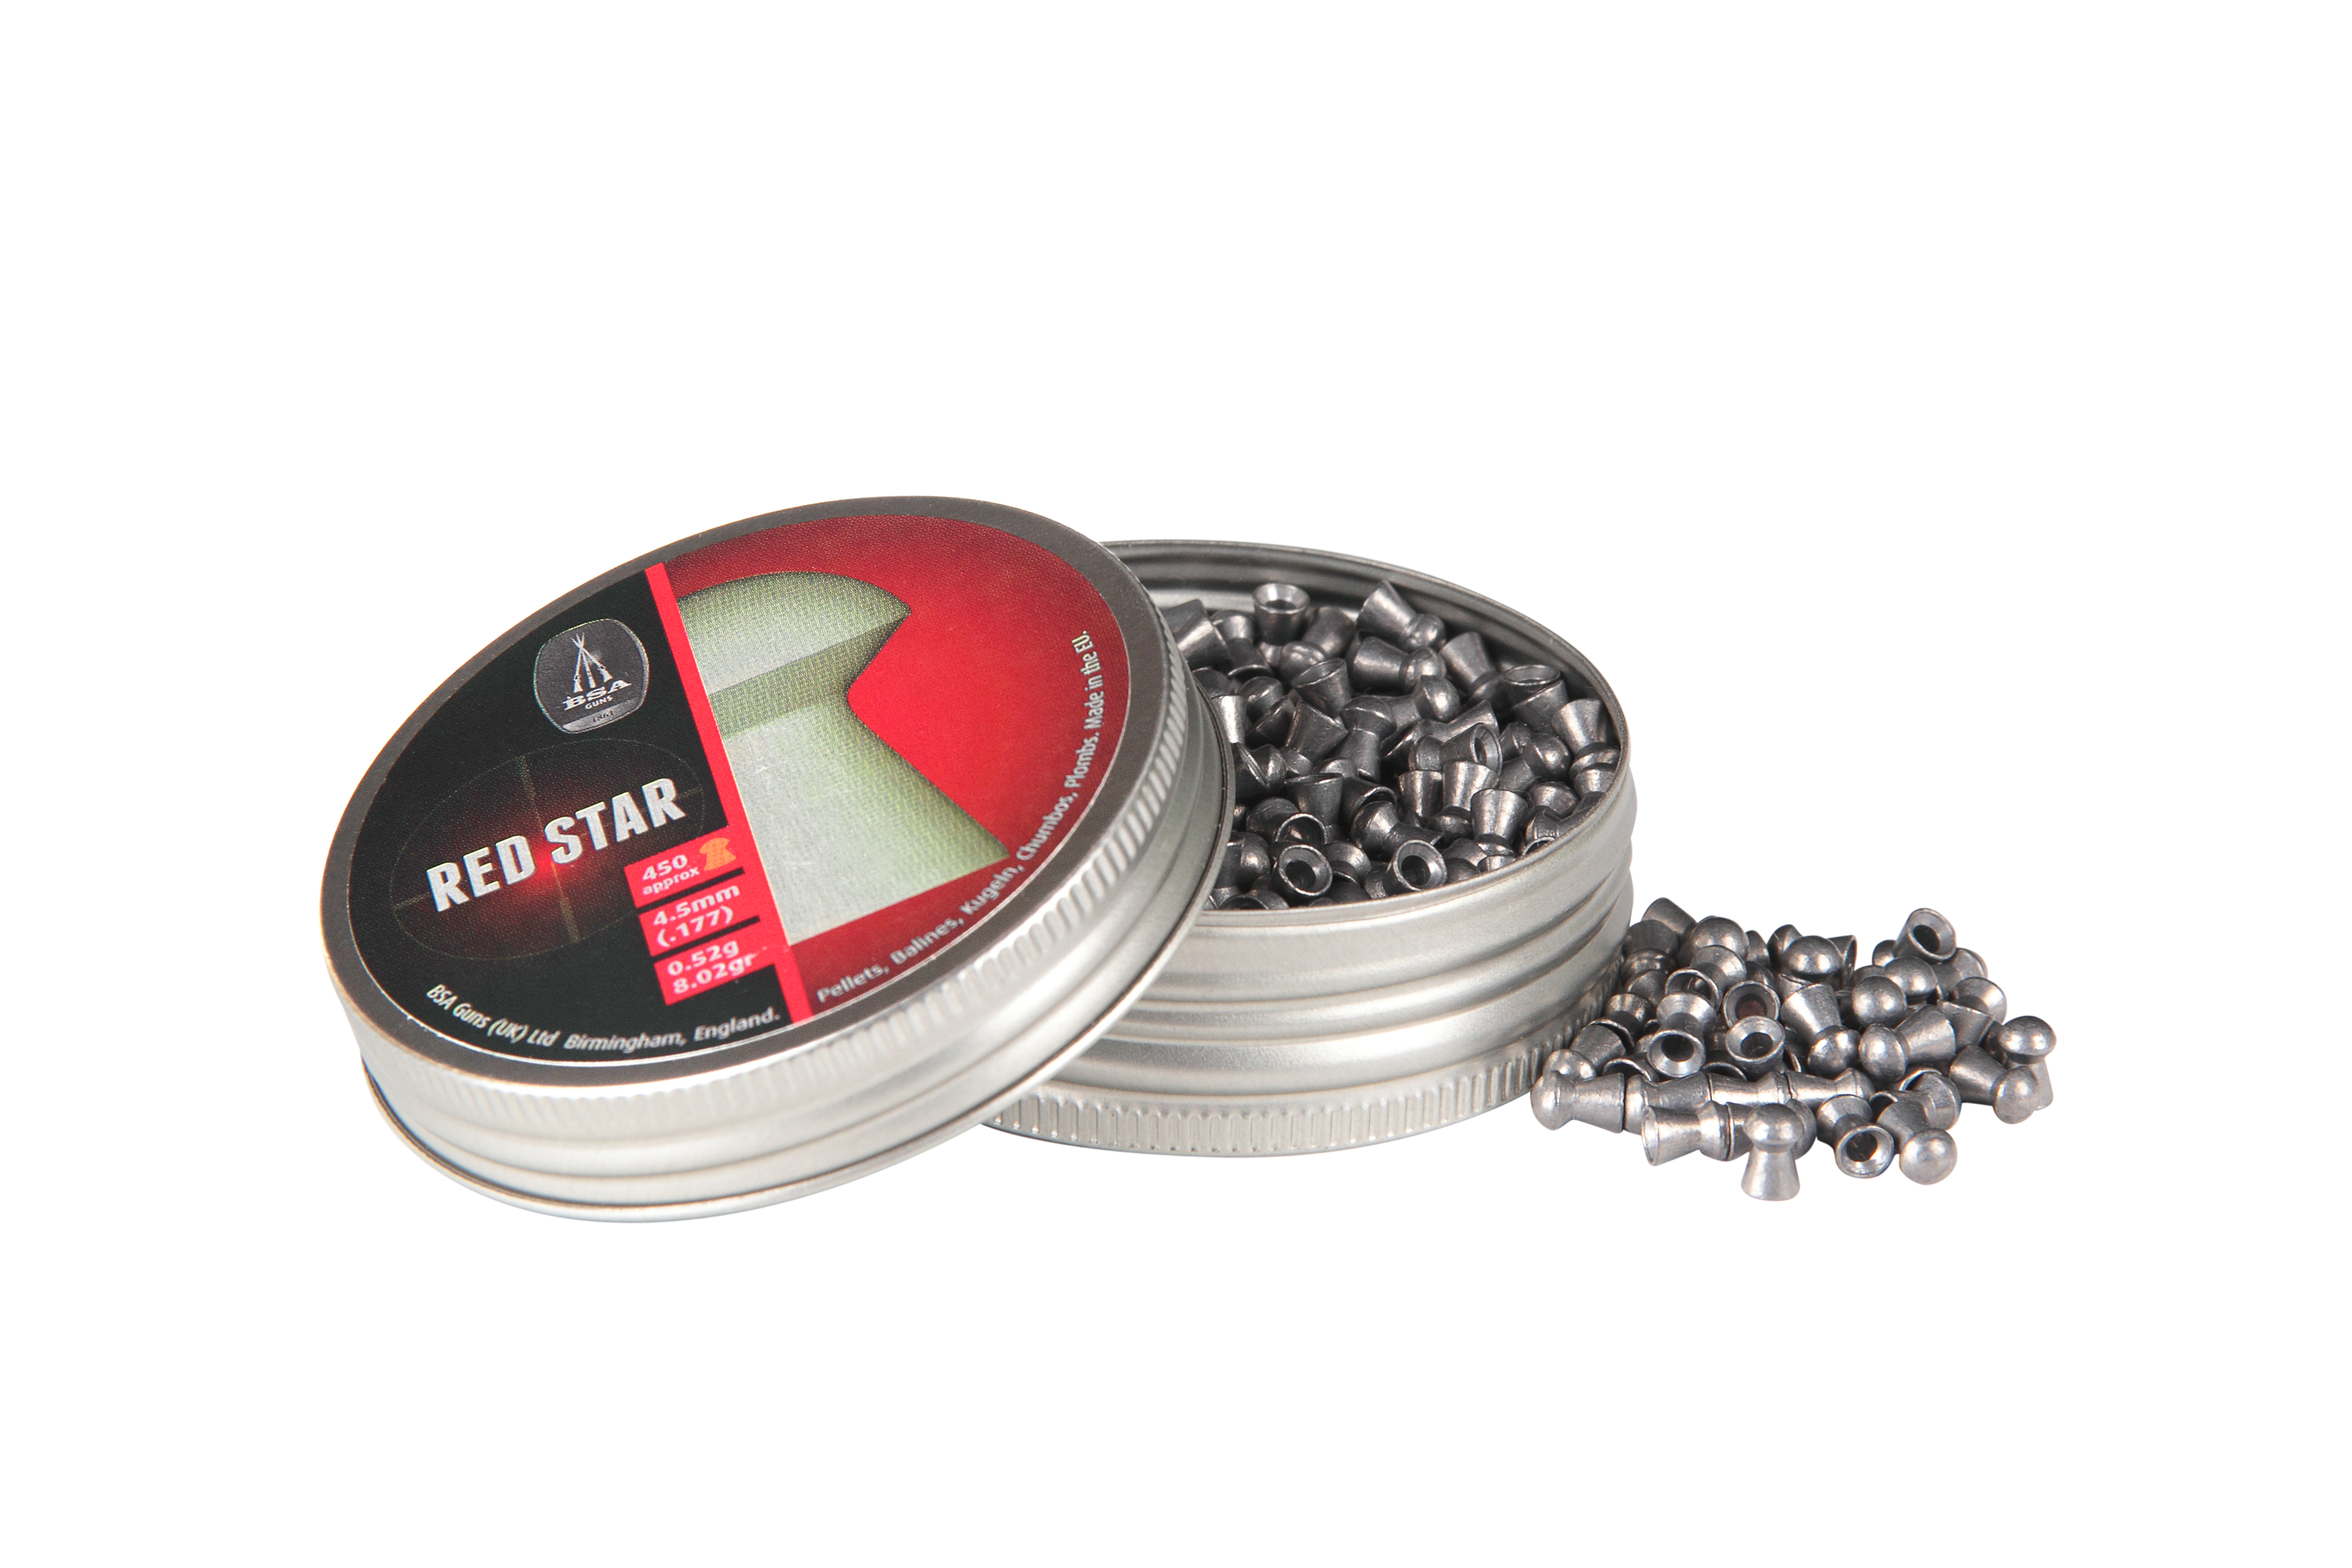 Red Star Pellets